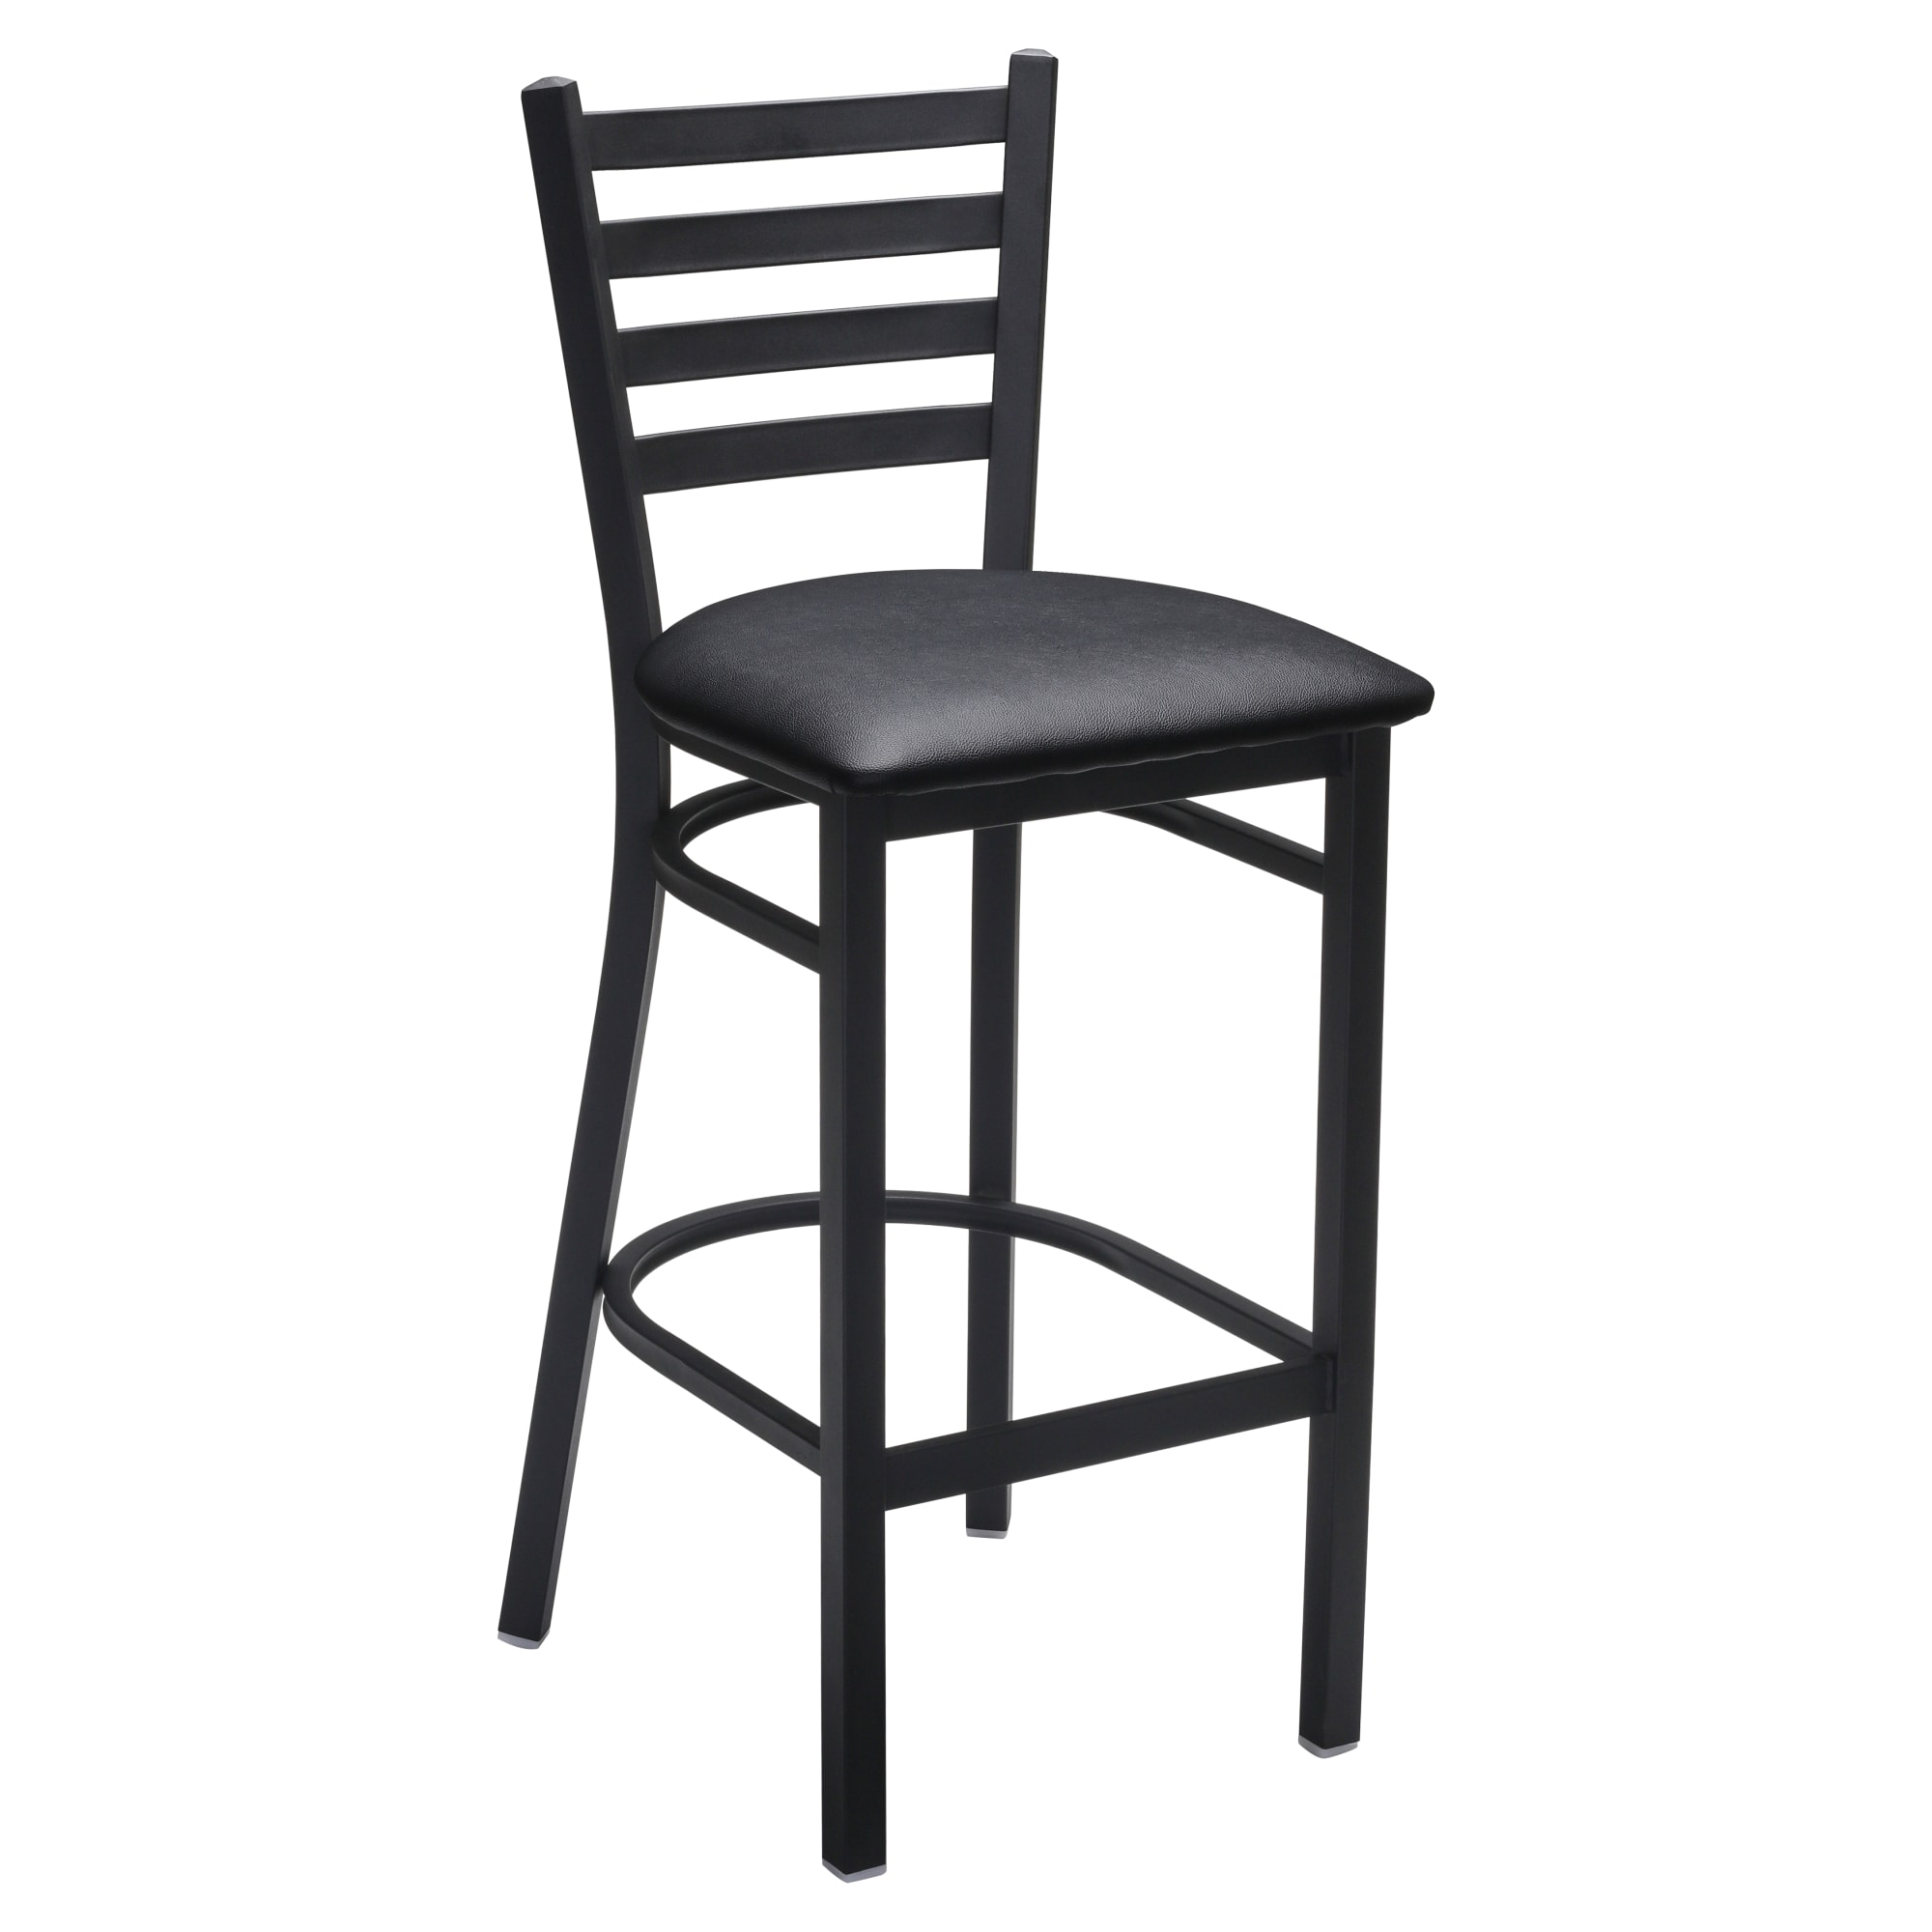 Ladder Back Metal Bar Stool with Ladder Back Metal Bar Stool